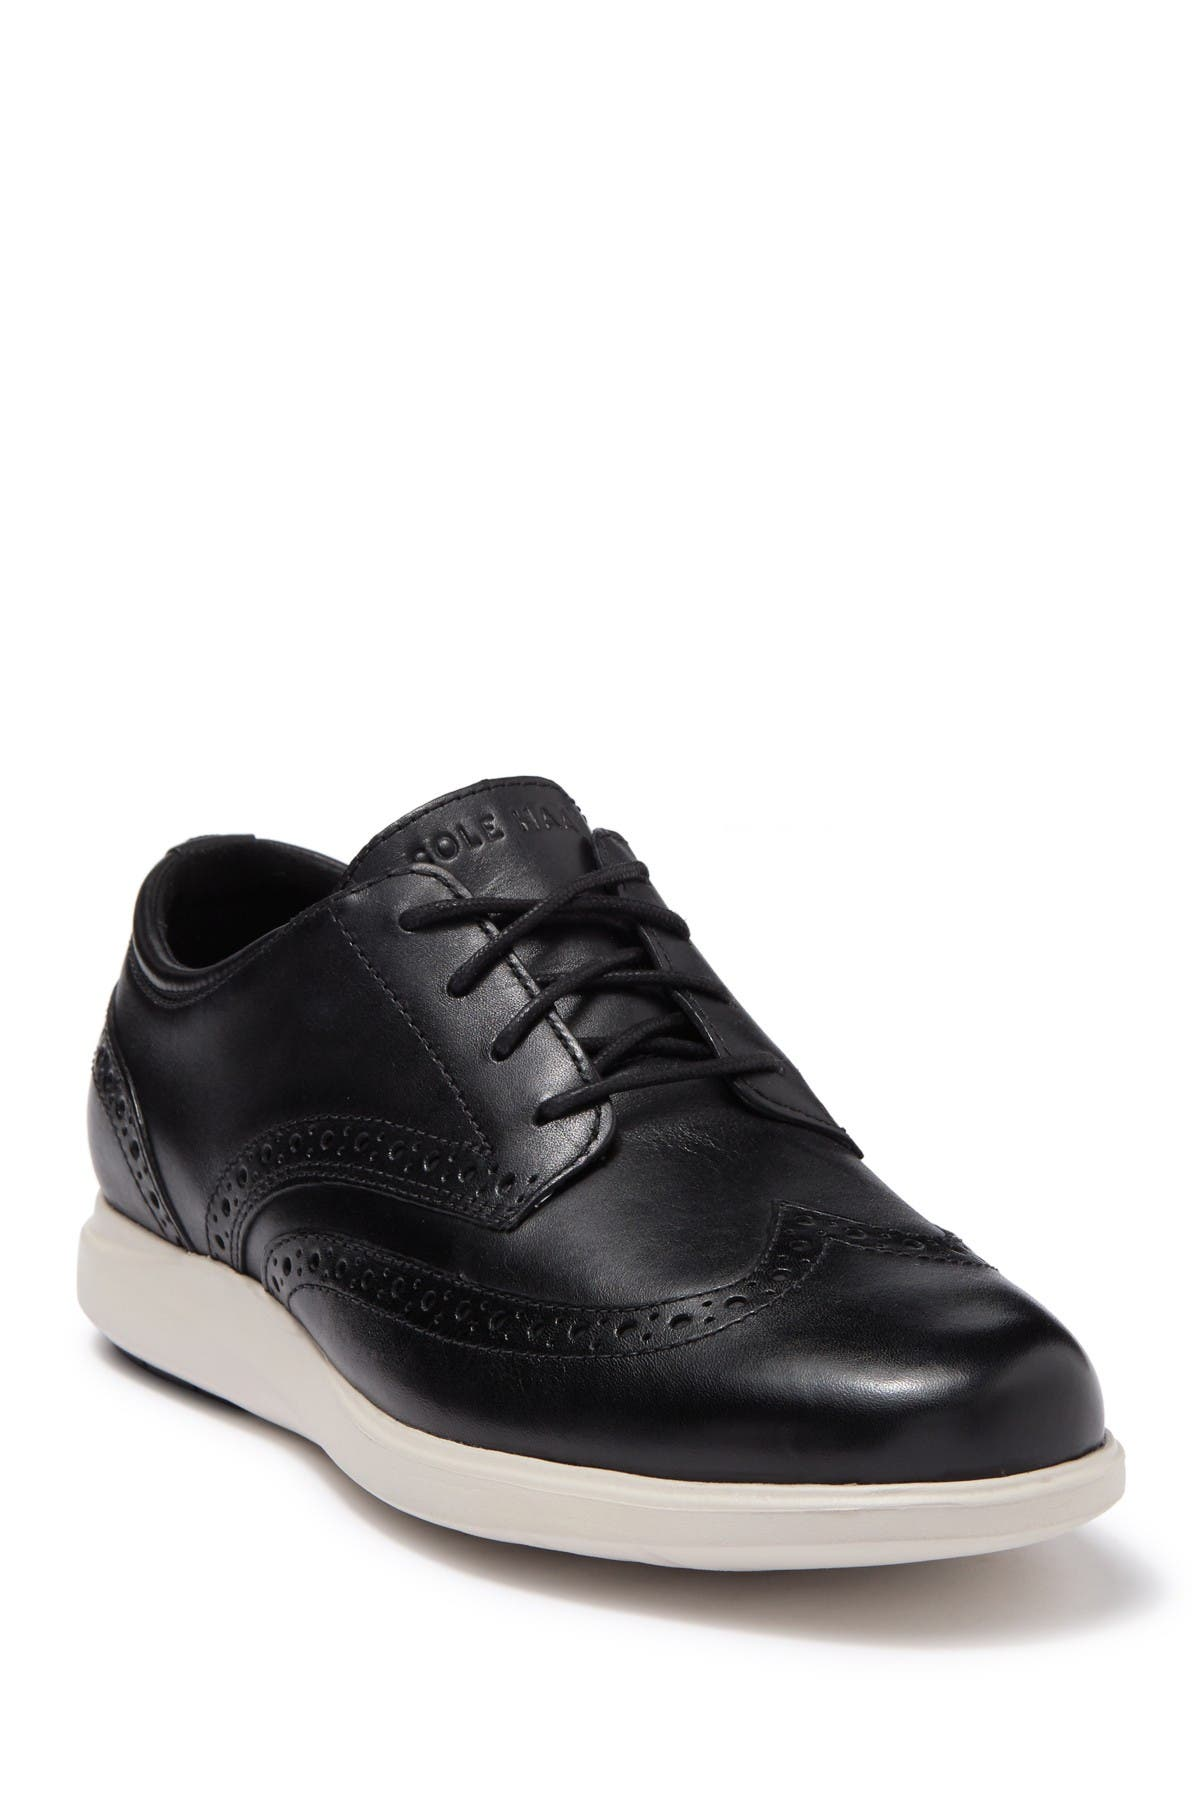 Image of Cole Haan Grand Plus Essex Leather Wingtip Oxford